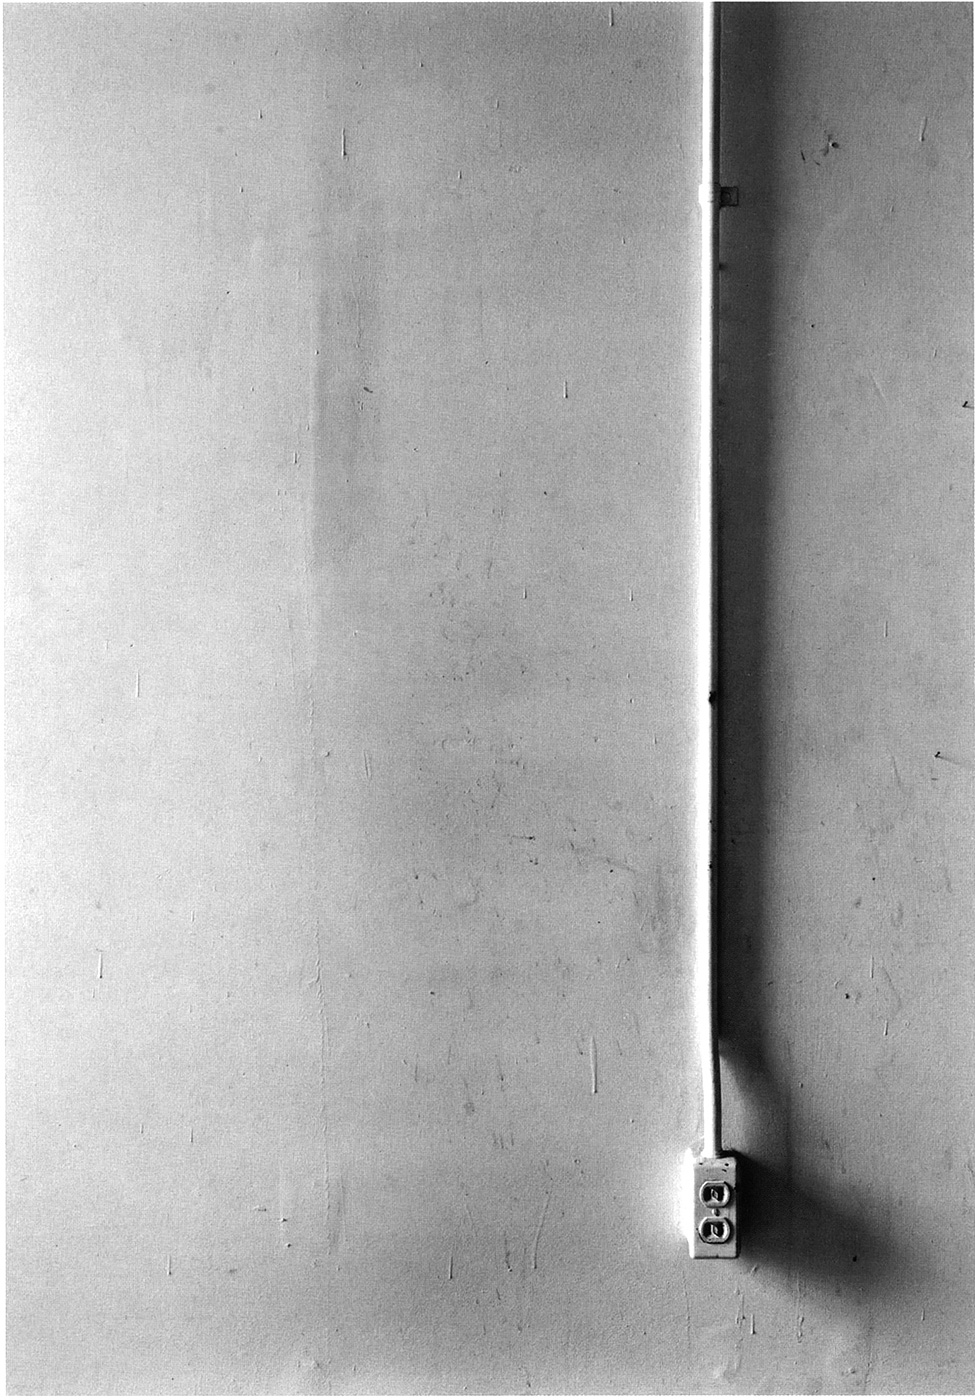 Lynne Cohen / Estate  - Untitled (Plug Like Flavin), 1970-1979